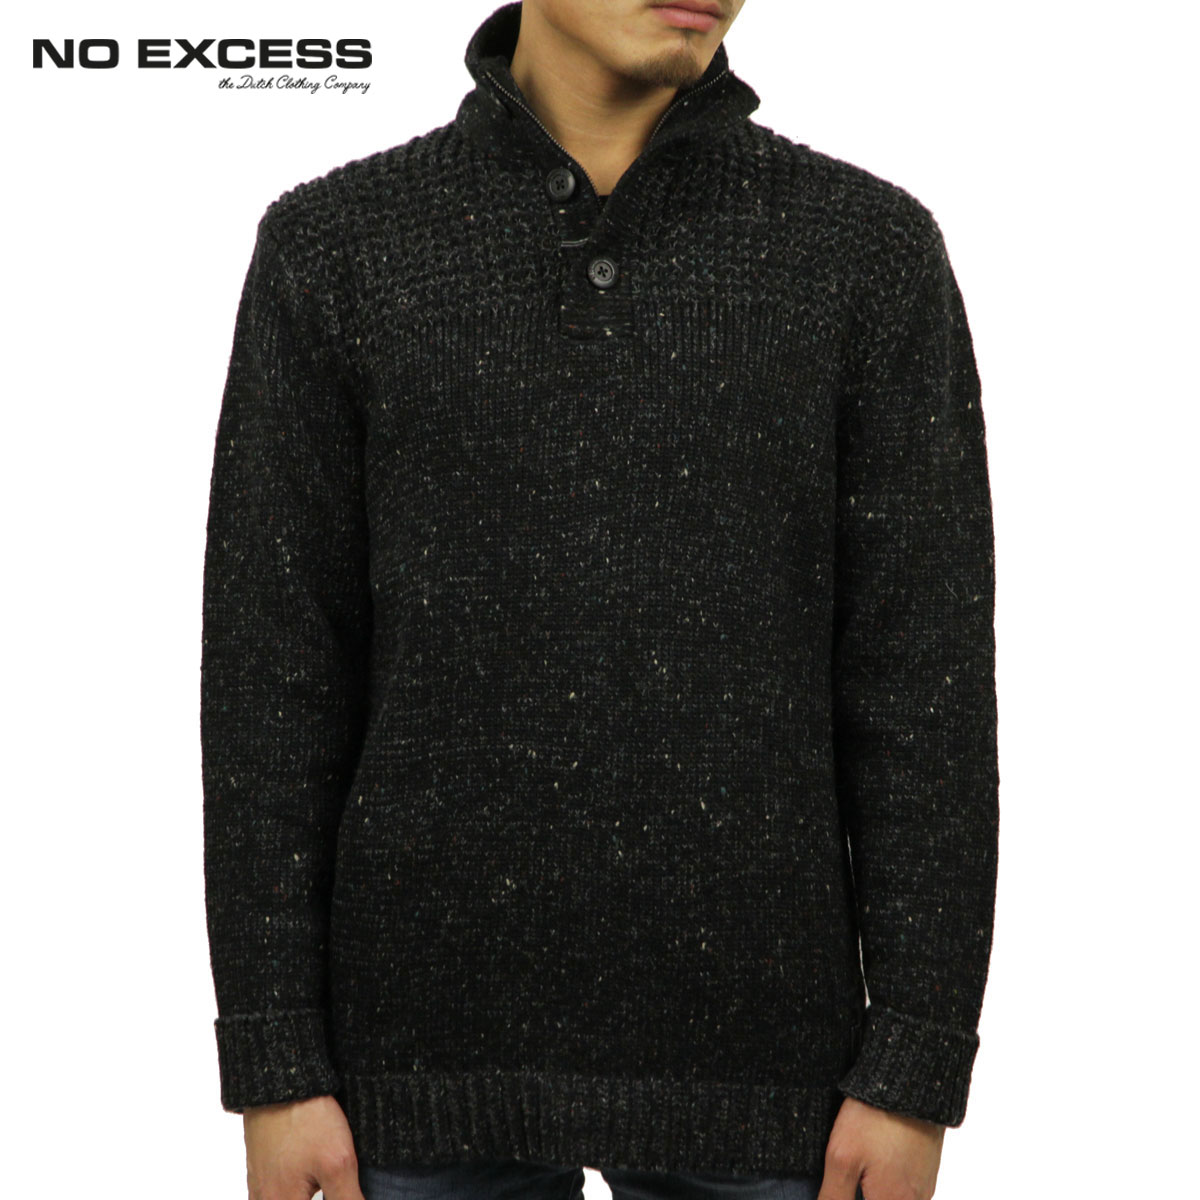 ノーエクセス NO EXCESS 正規品 メンズ セーター Half Button Zip Pullover Sweater230957020 D00S20